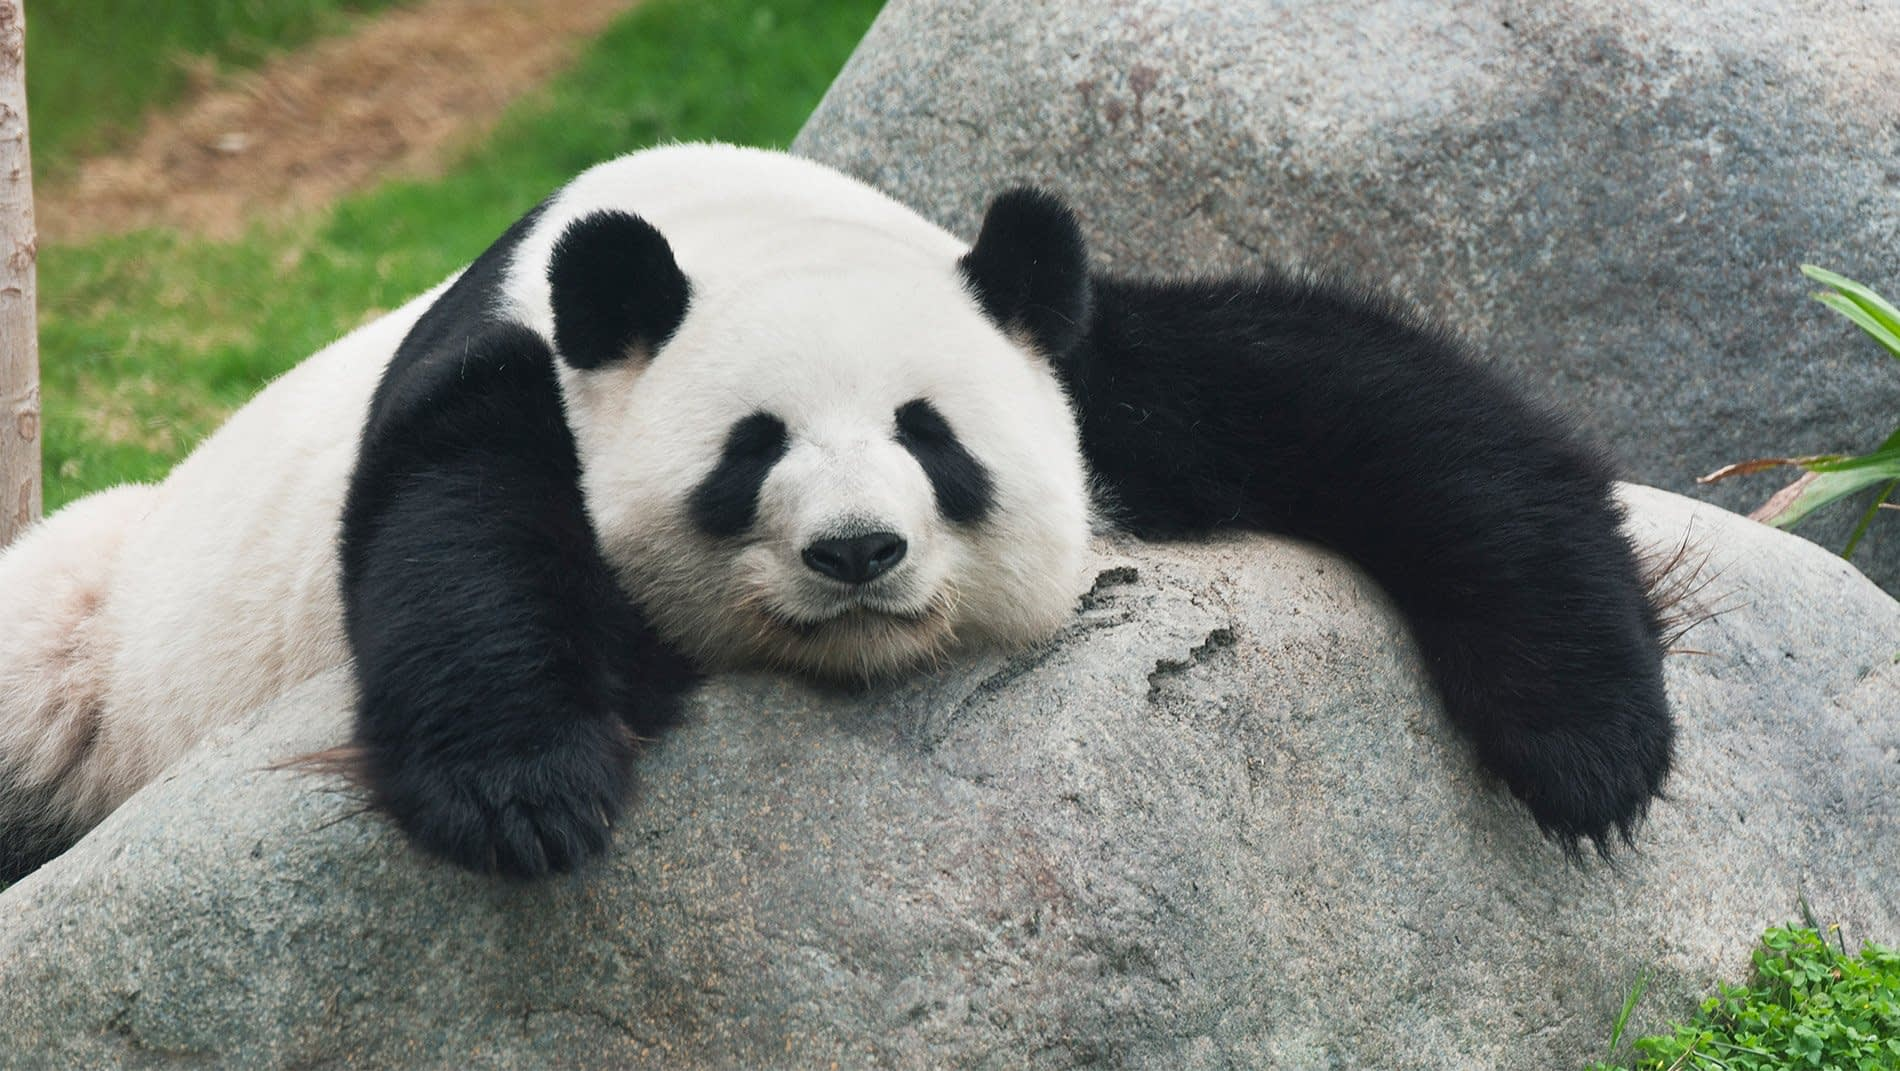 Pandas~Previously endangered now classed as